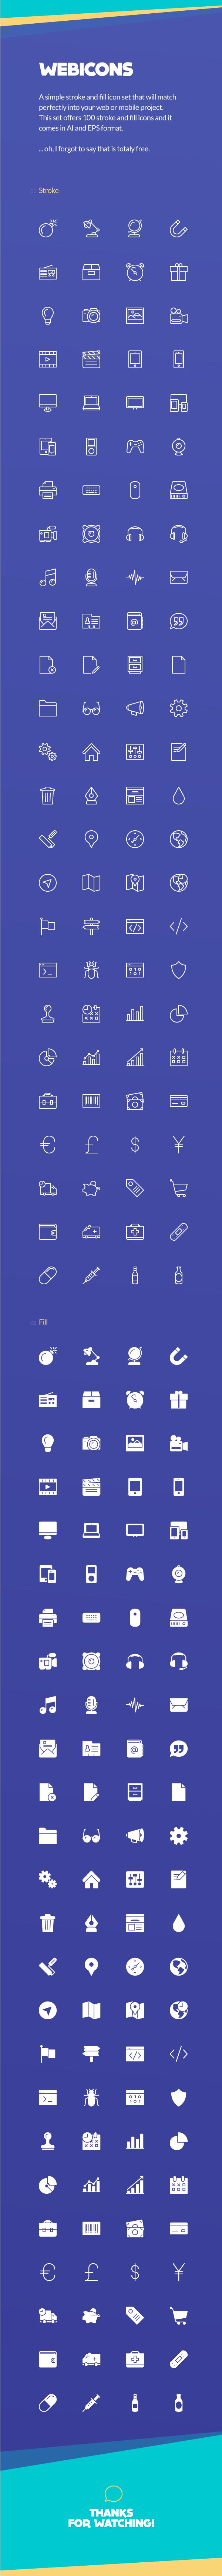 Webicons – 100 Stroke & Fill Icons on Behance